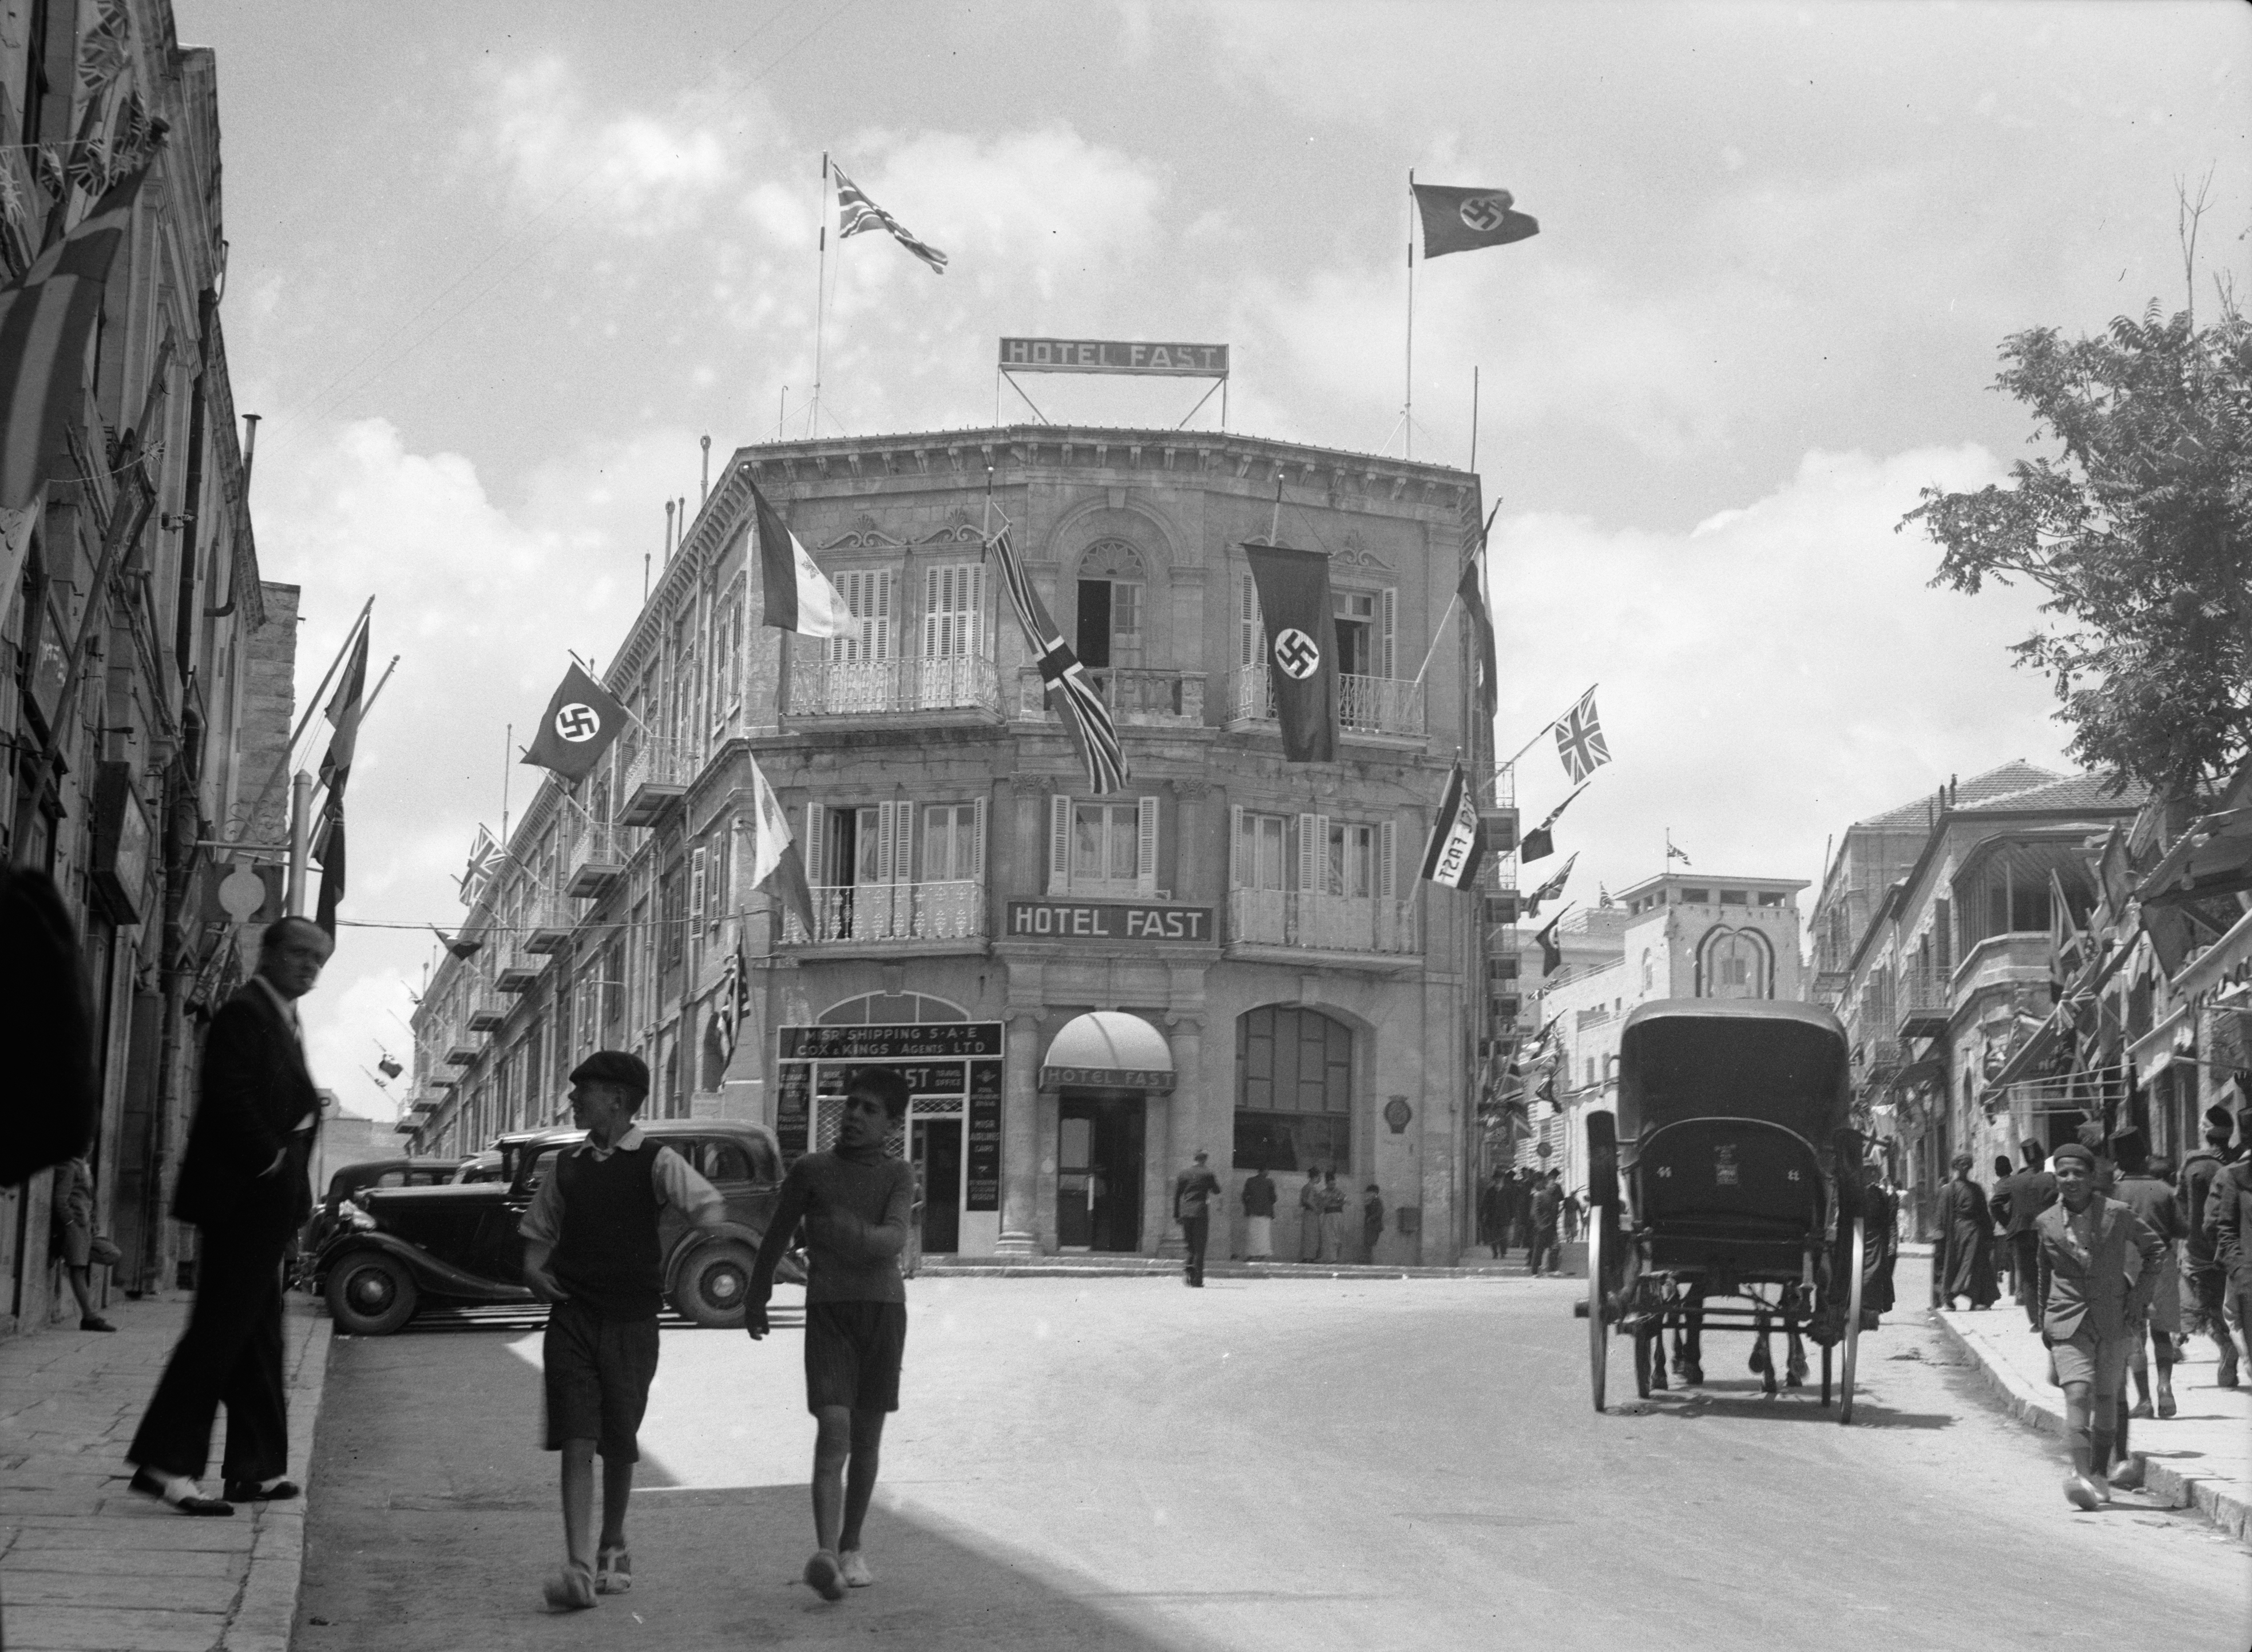 British_and_Nazi_flags_flying_from_the_Fast_Hotel._matpc.16994.jpg